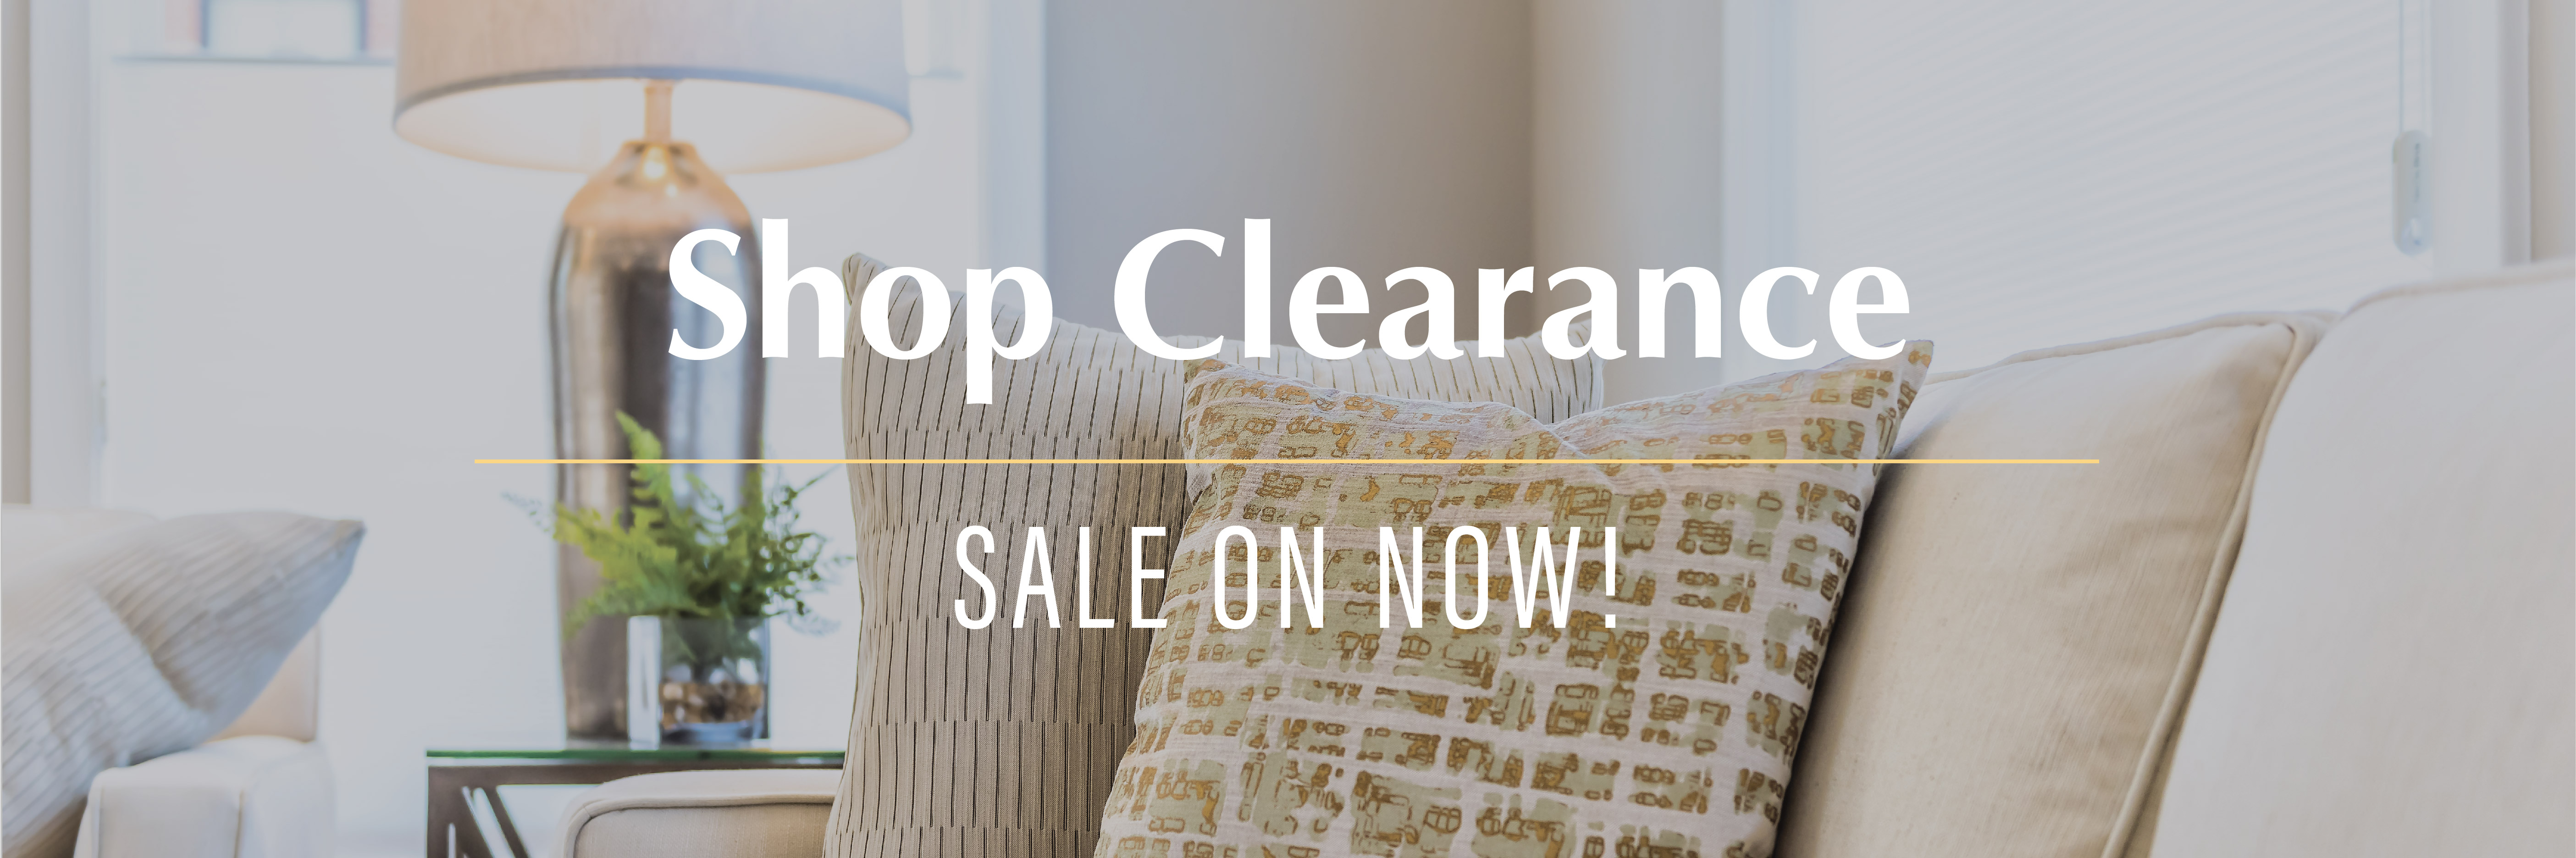 NCL Clearance Web Banner.jpg